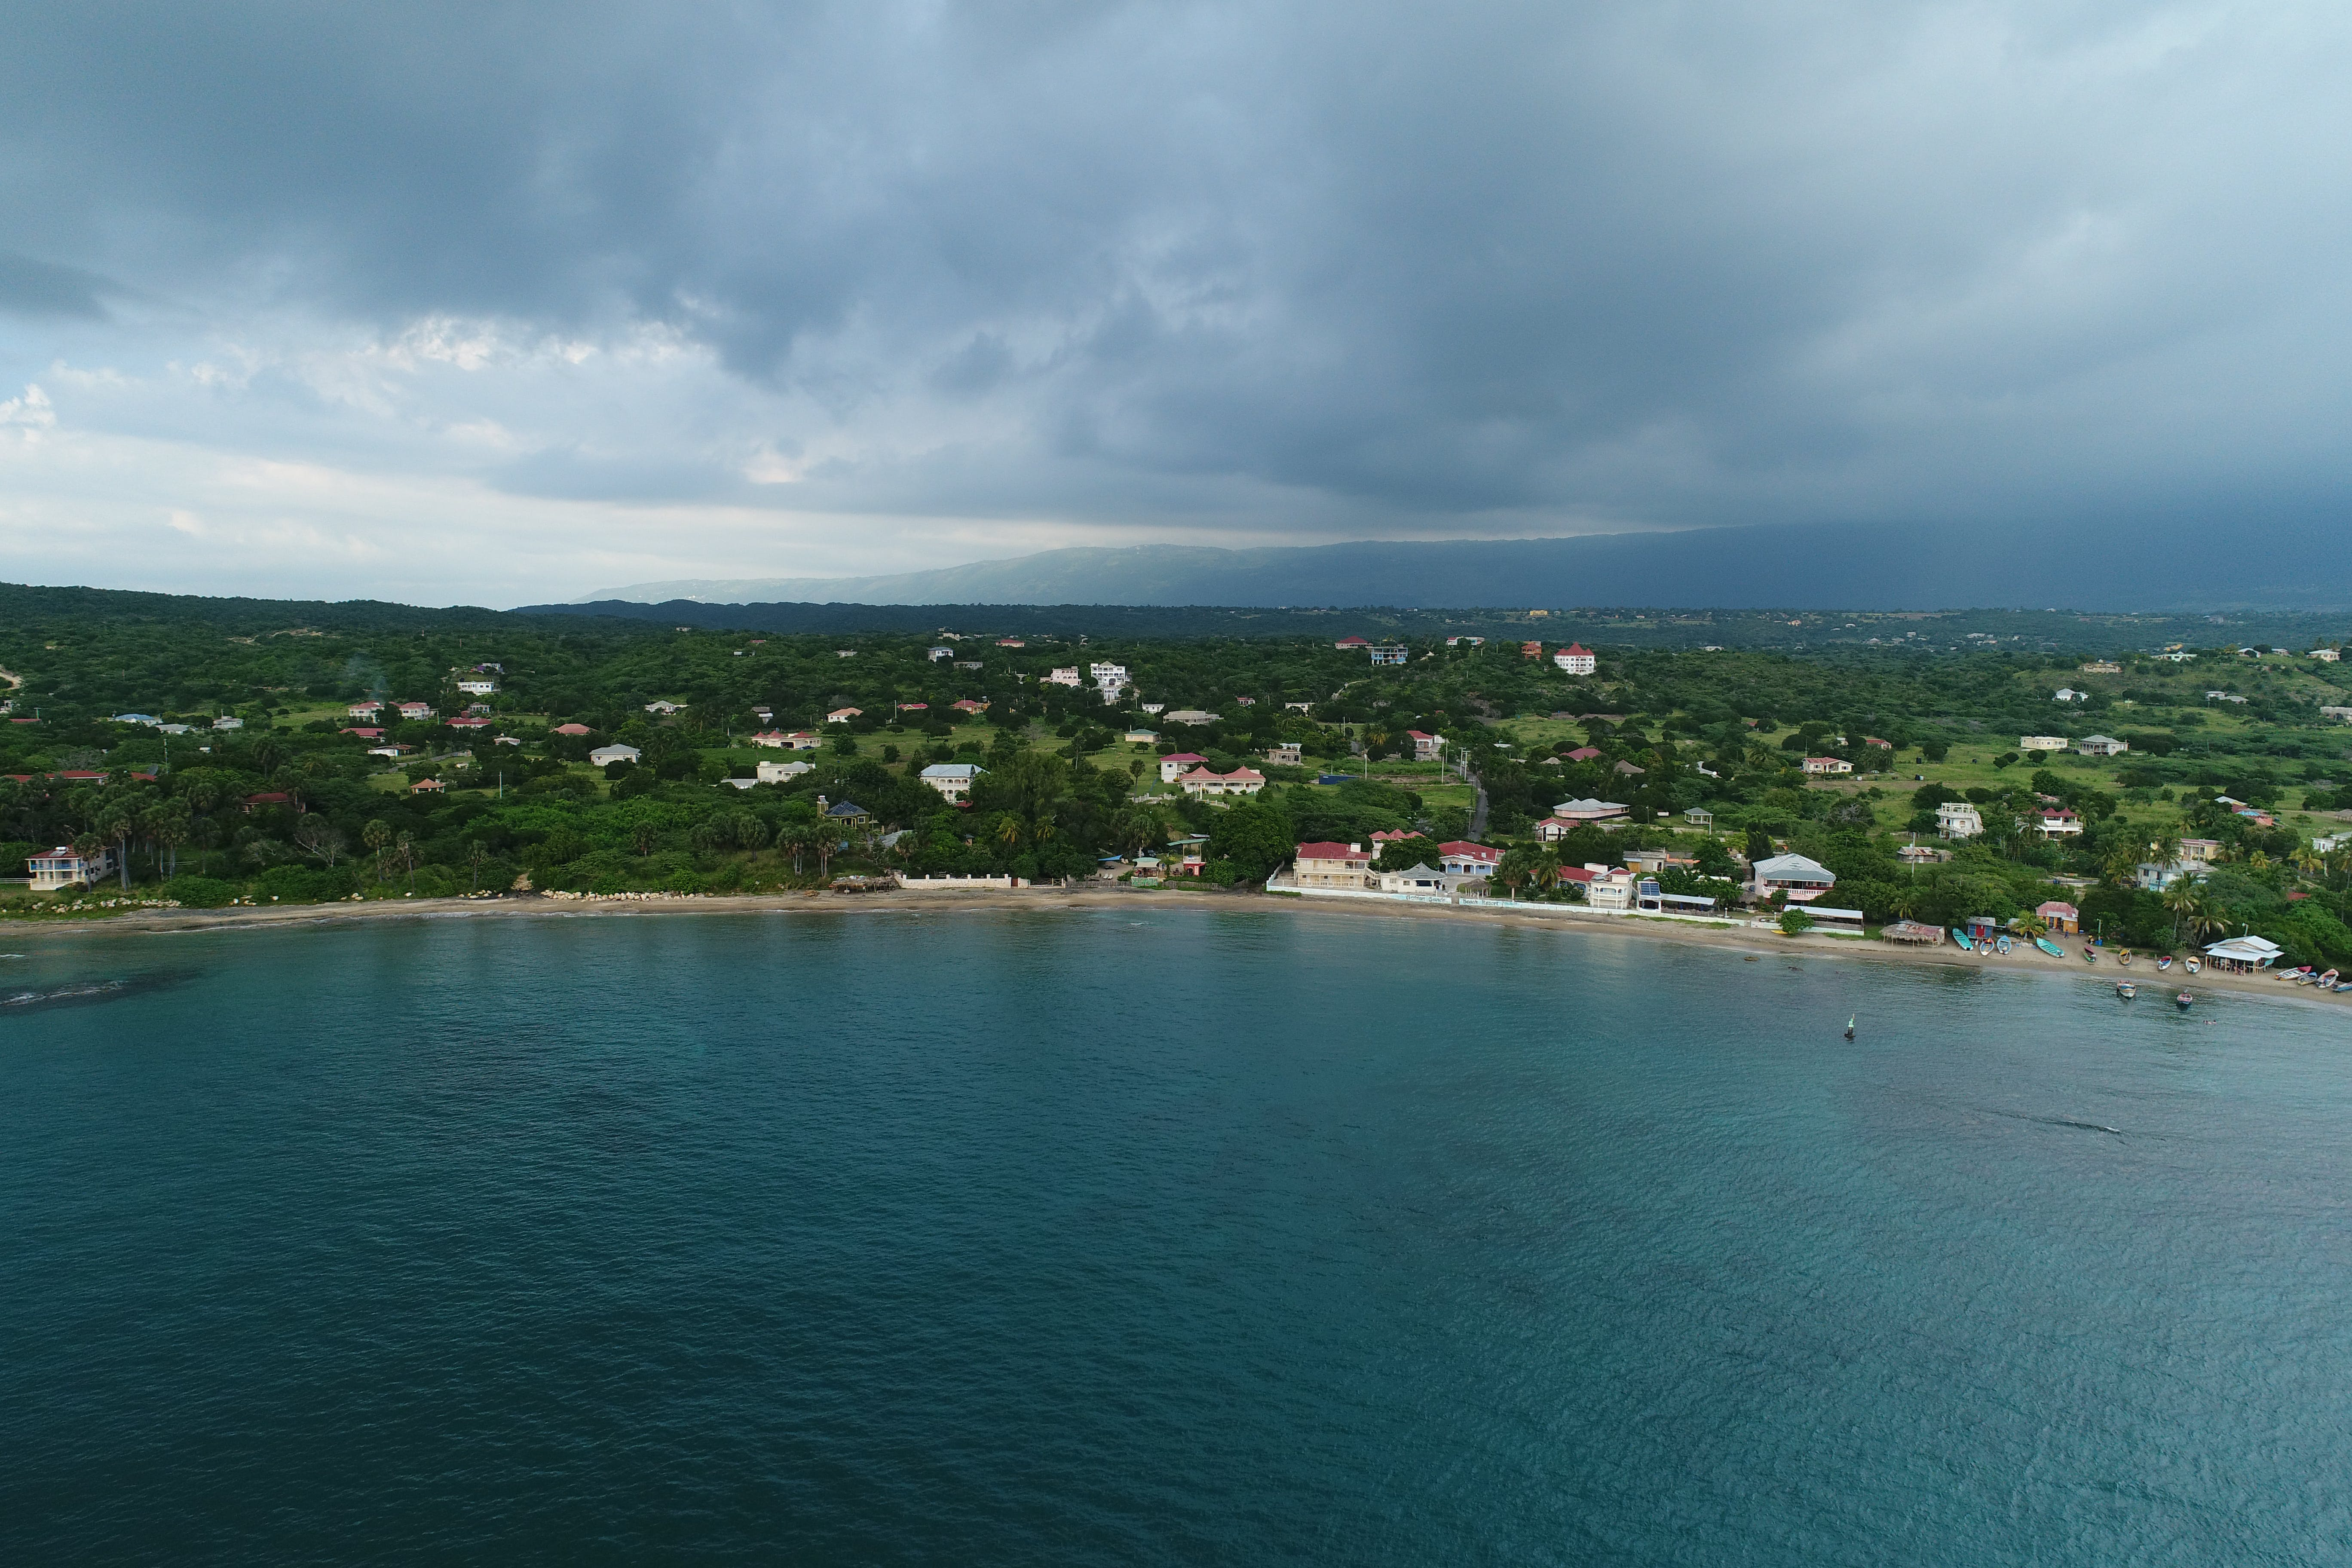 Katamah Beachfront Guesthouse, Treasure Beach, Saint Elizabeth. Jamaica West Indies Caribbean